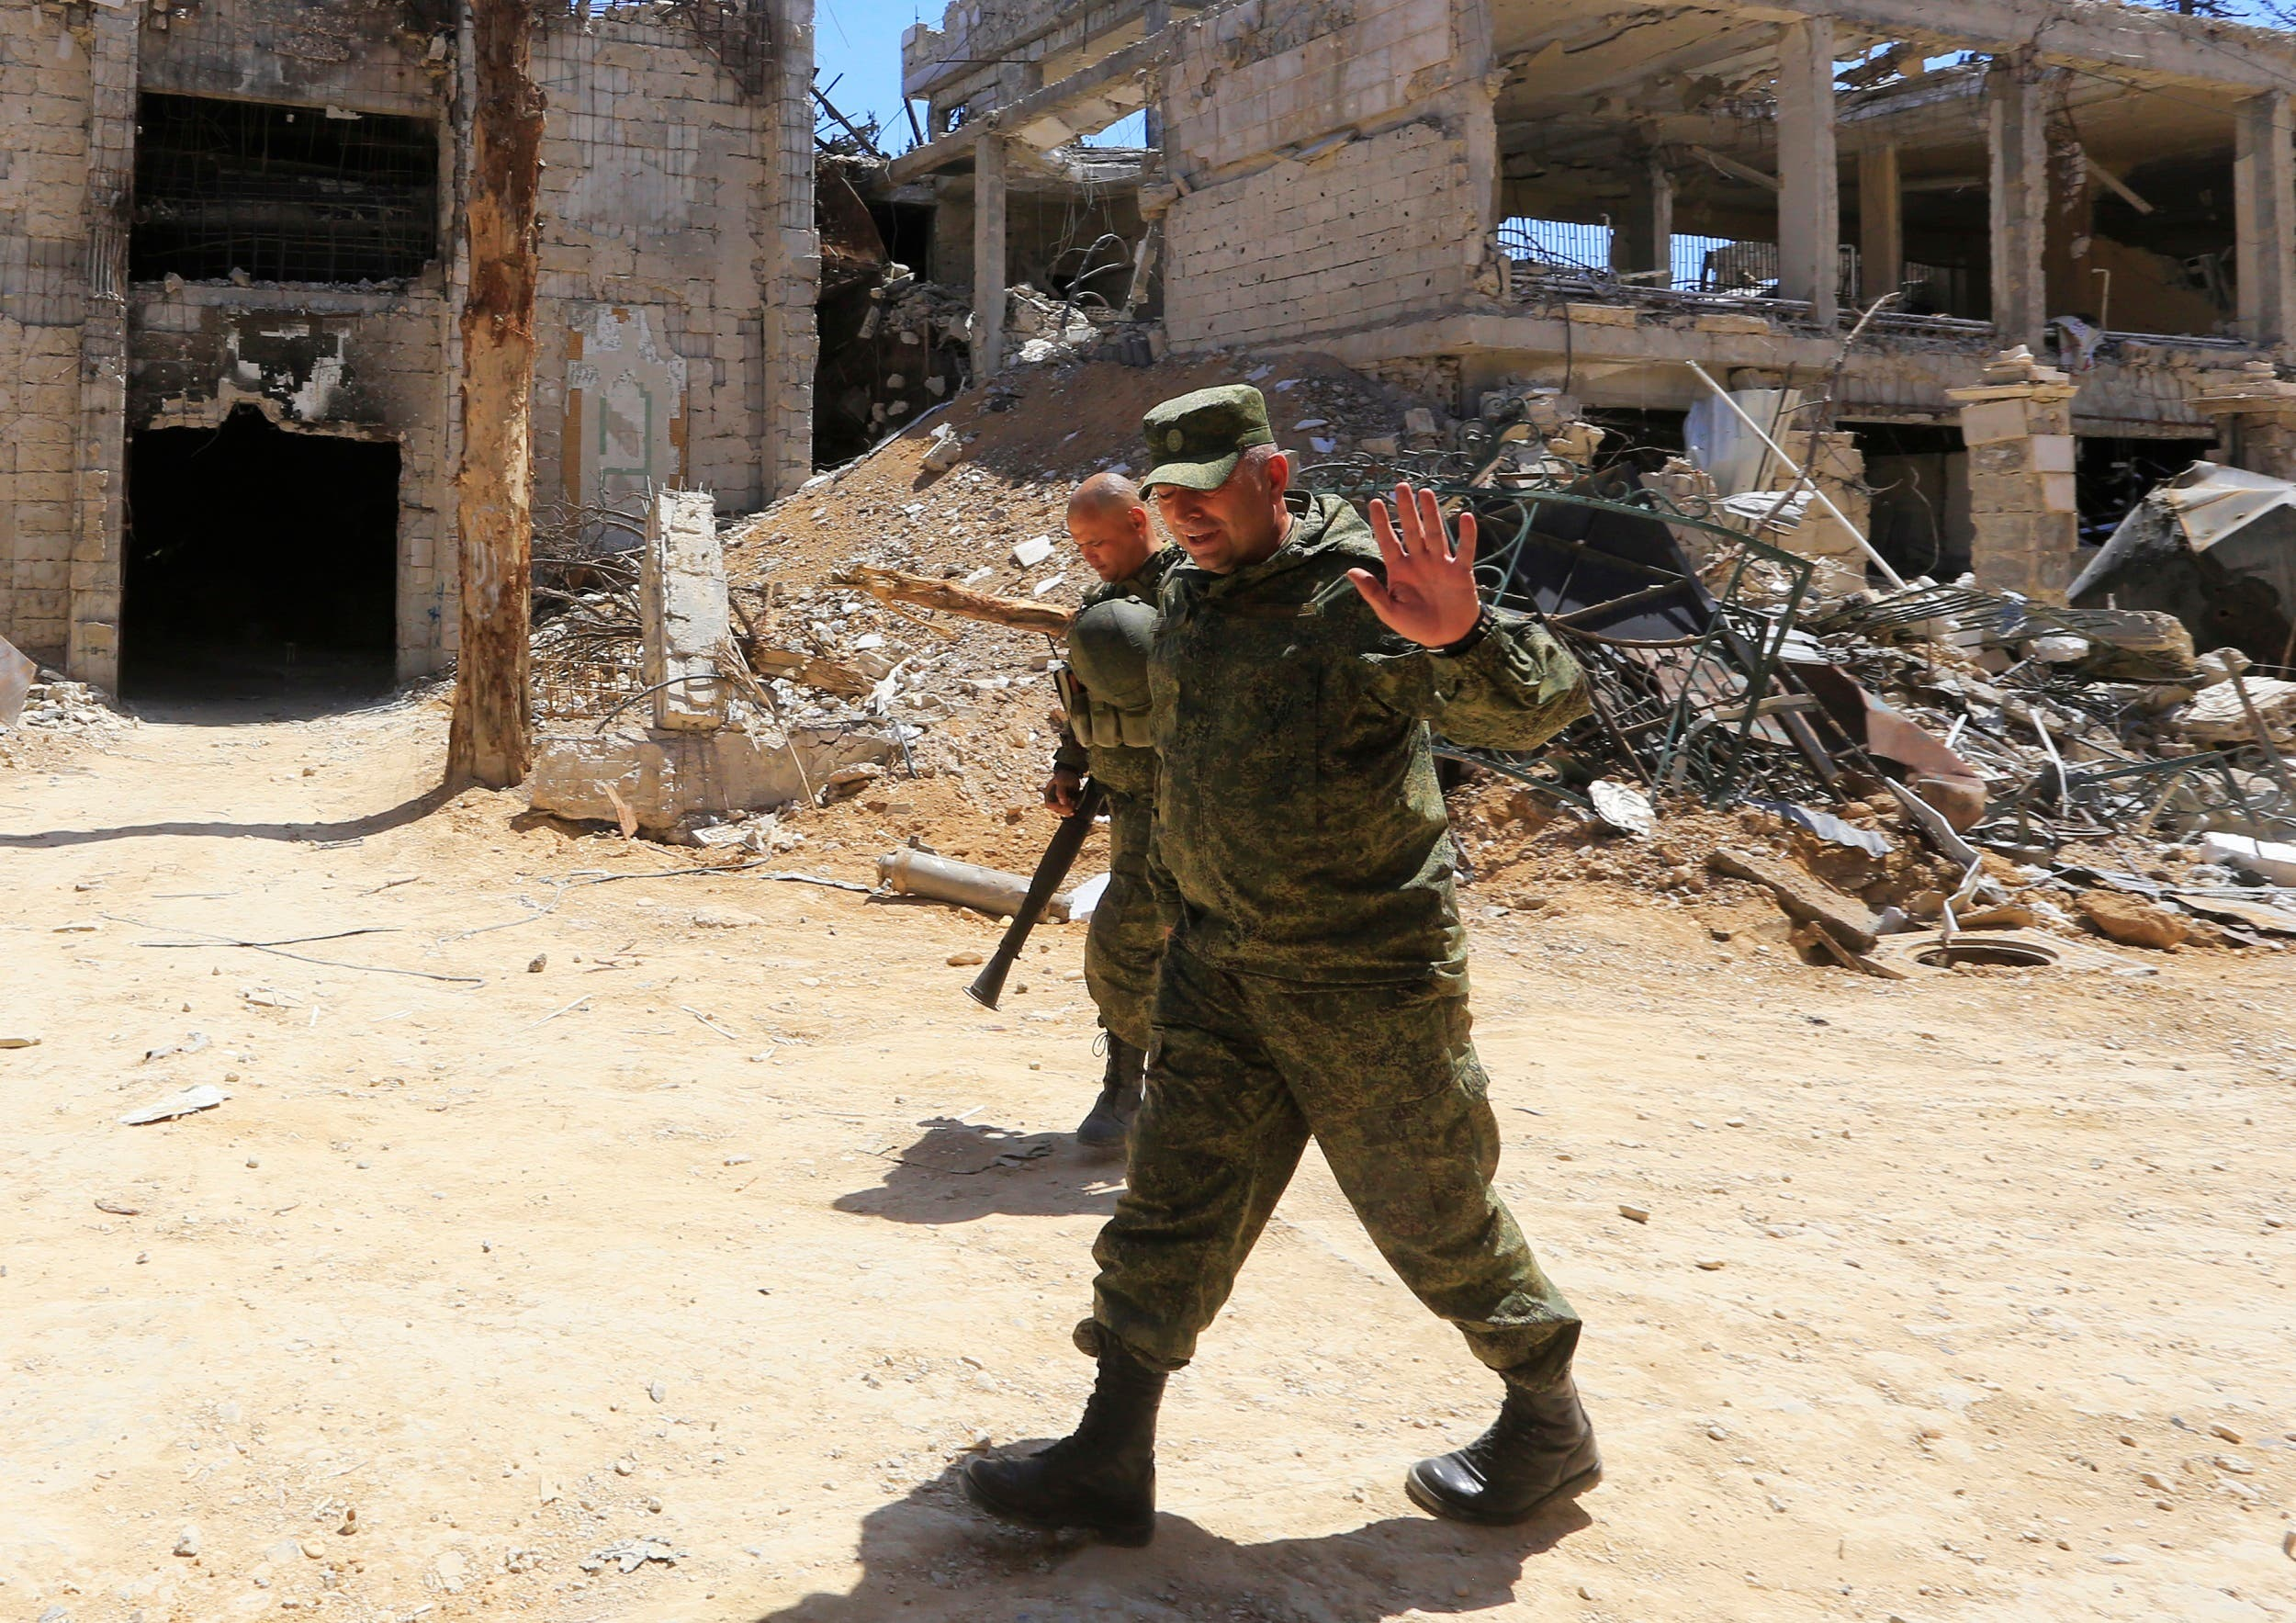 Russian forces walk past damaged buildings in Douma during an organized media tour on April 16, 2018. (AFP)